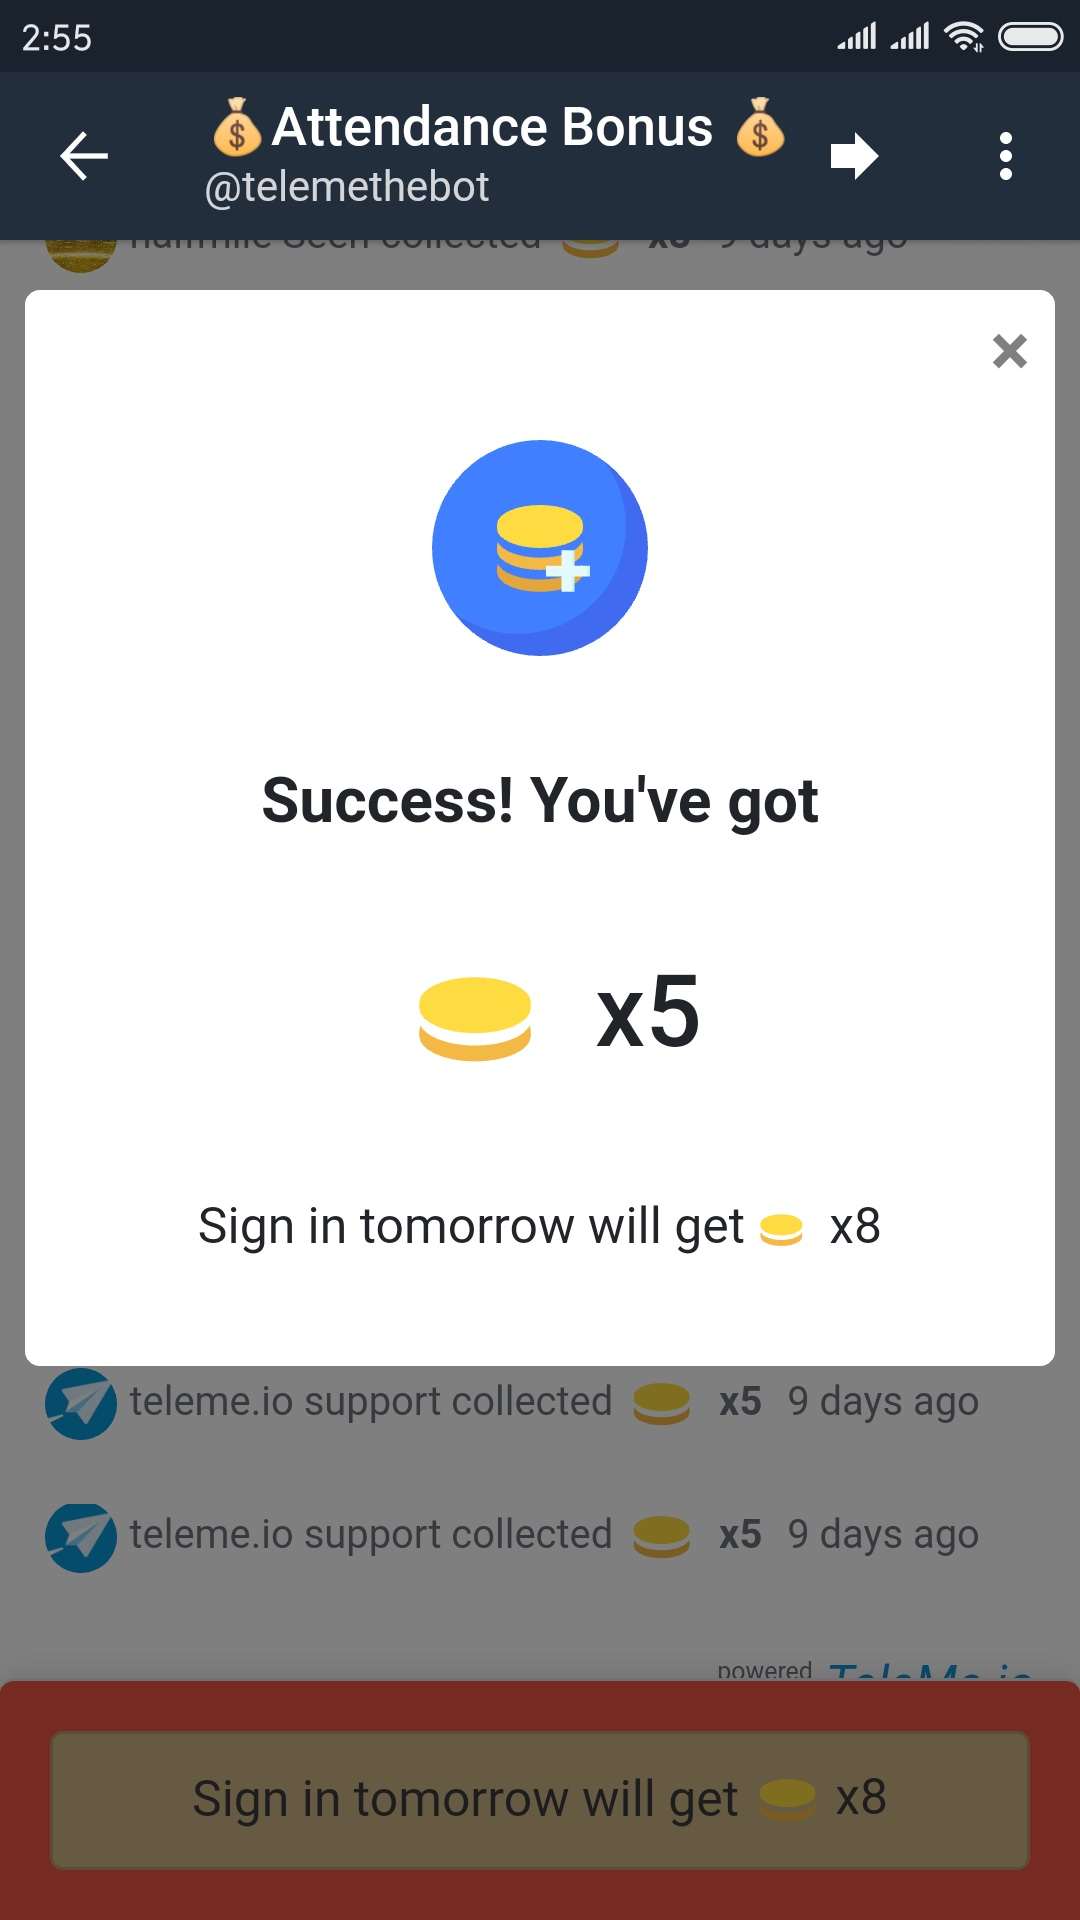 a screenshot of collecting attendance bonus